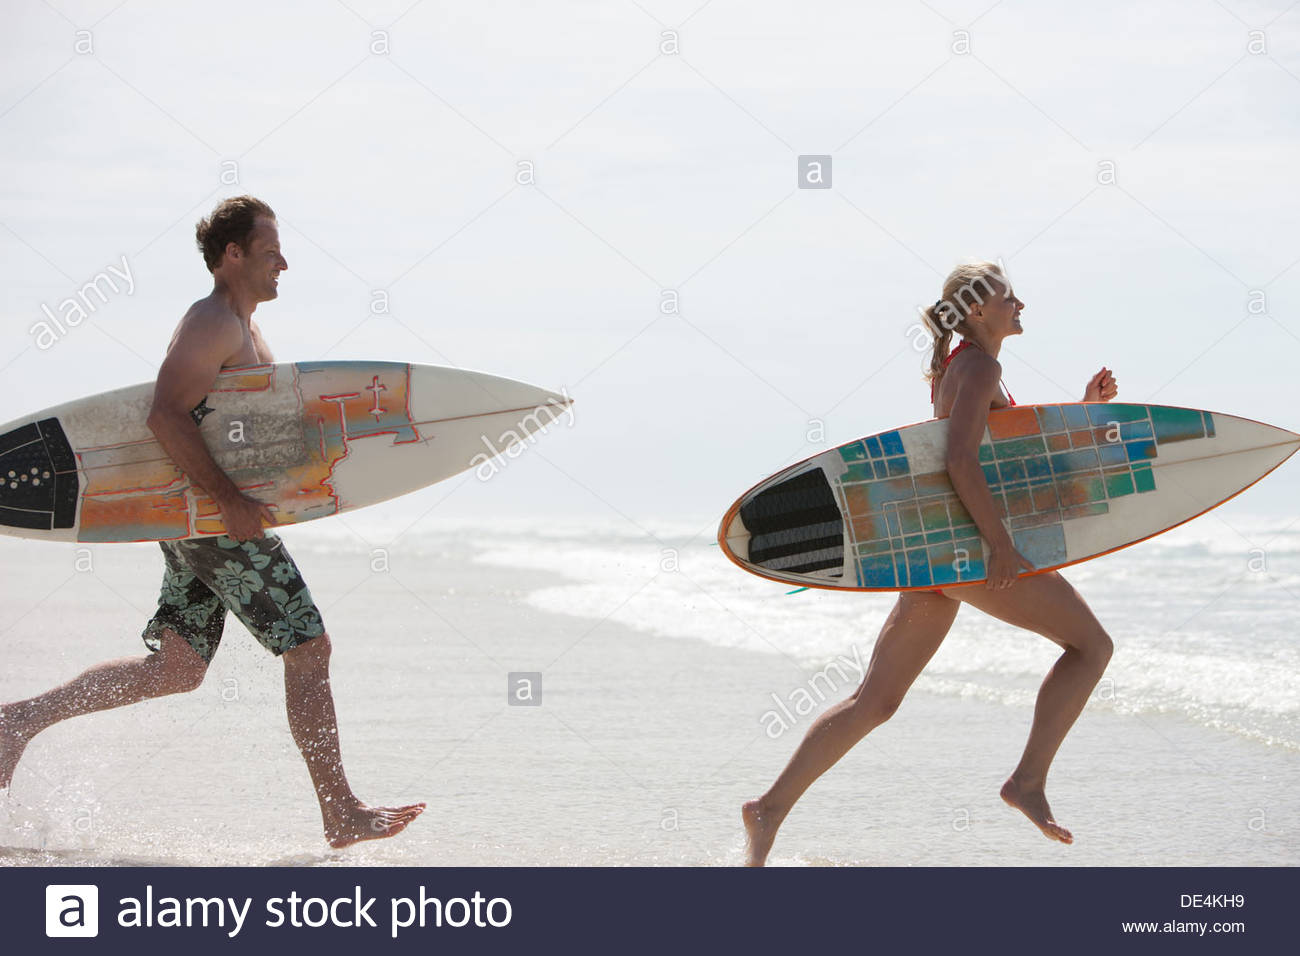 Couple with surfboards running on beach - Stock Image